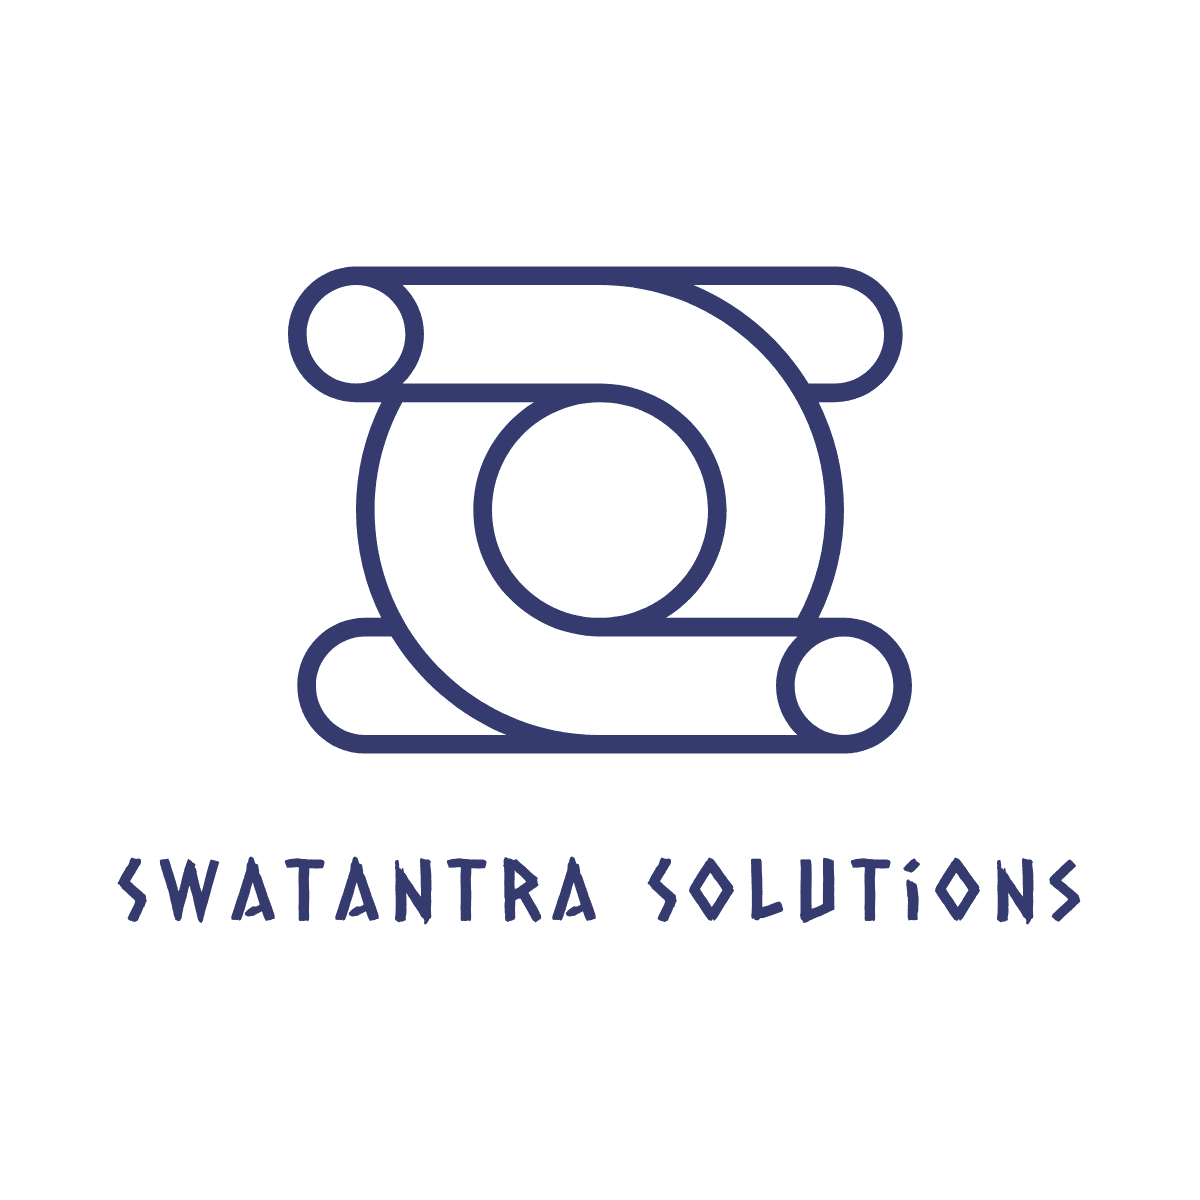 Swatantra Solutions